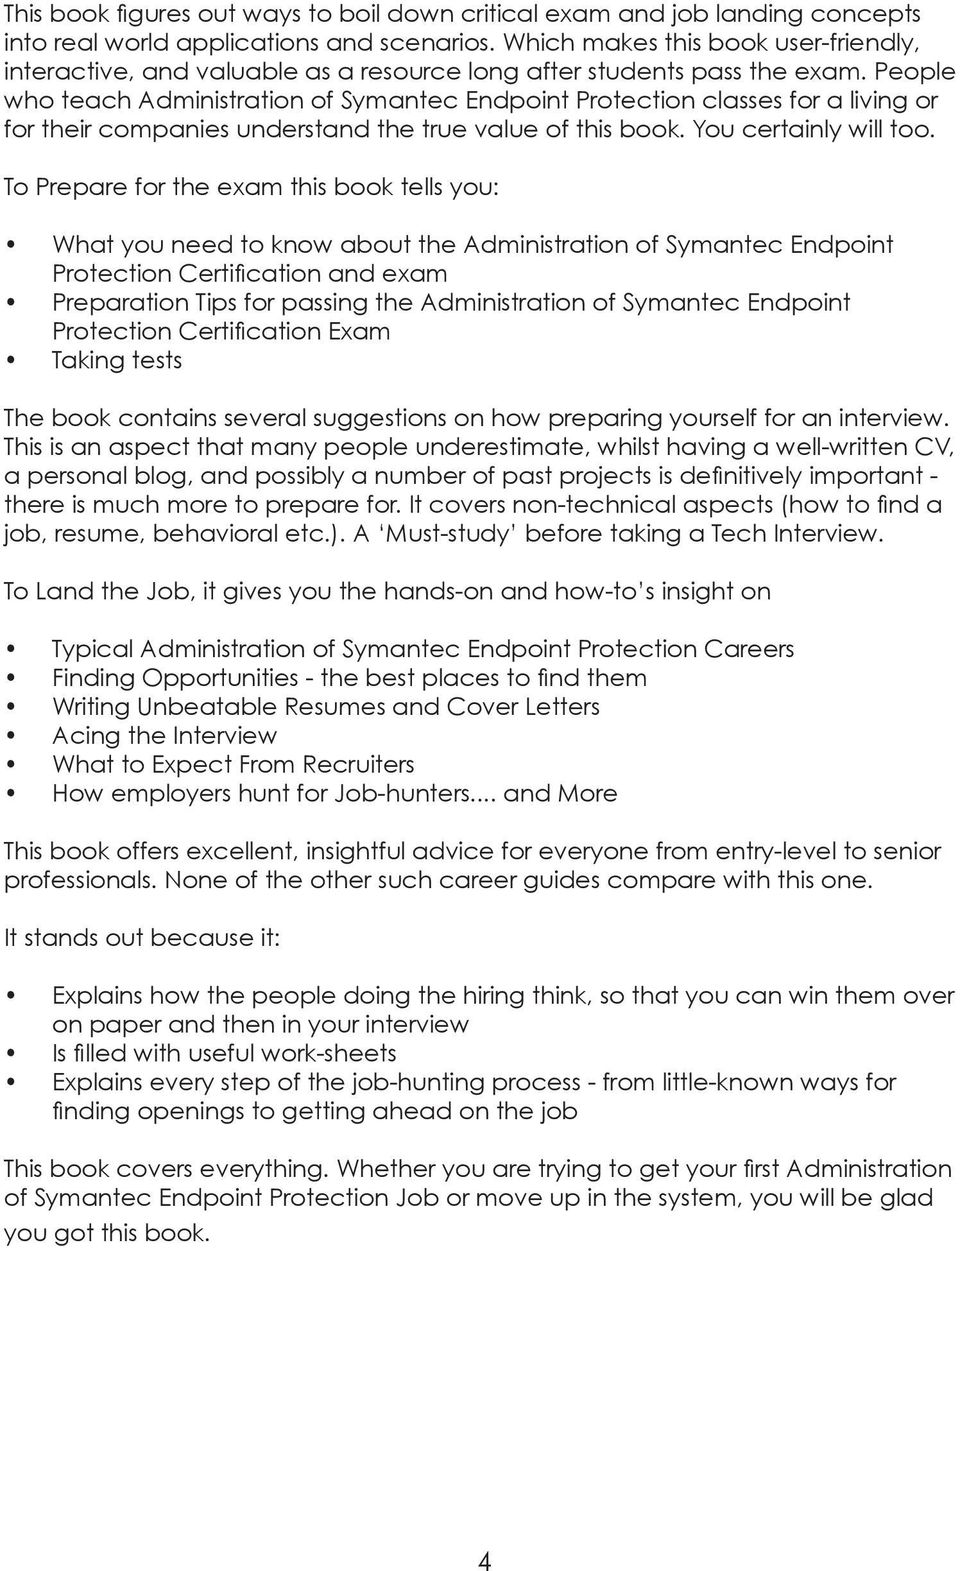 administration of symantec endpoint protection pdf free administrator resume cover letter Resume Symantec Endpoint Protection Administrator Resume